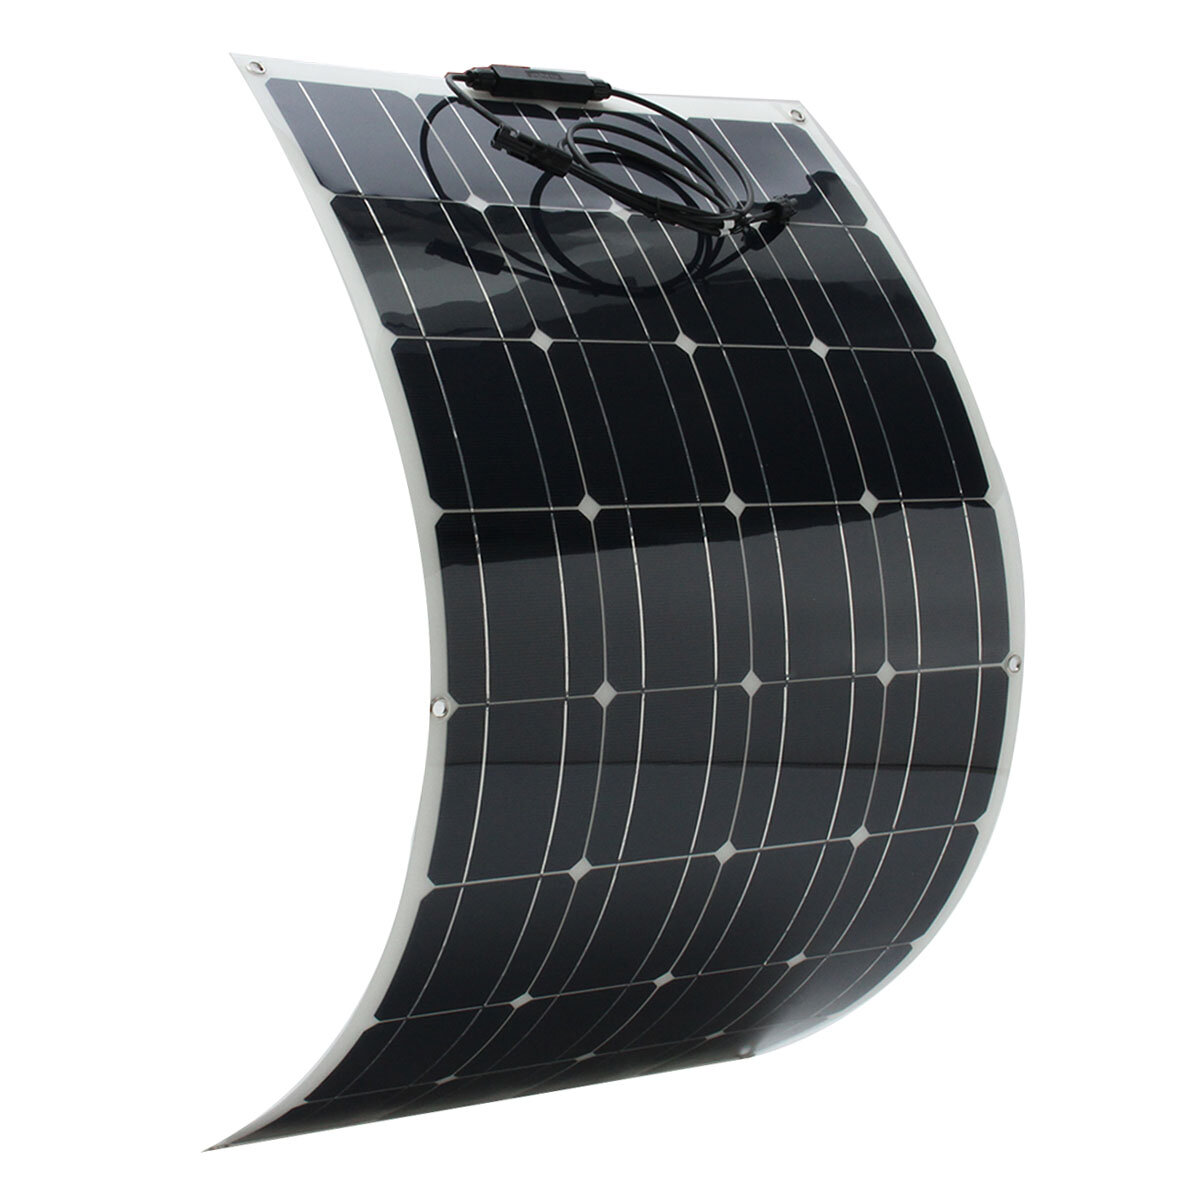 Elfeland® SP-37 18V 100W 1050*540mm Semi-Flexible Monocrystalline Solar Panel